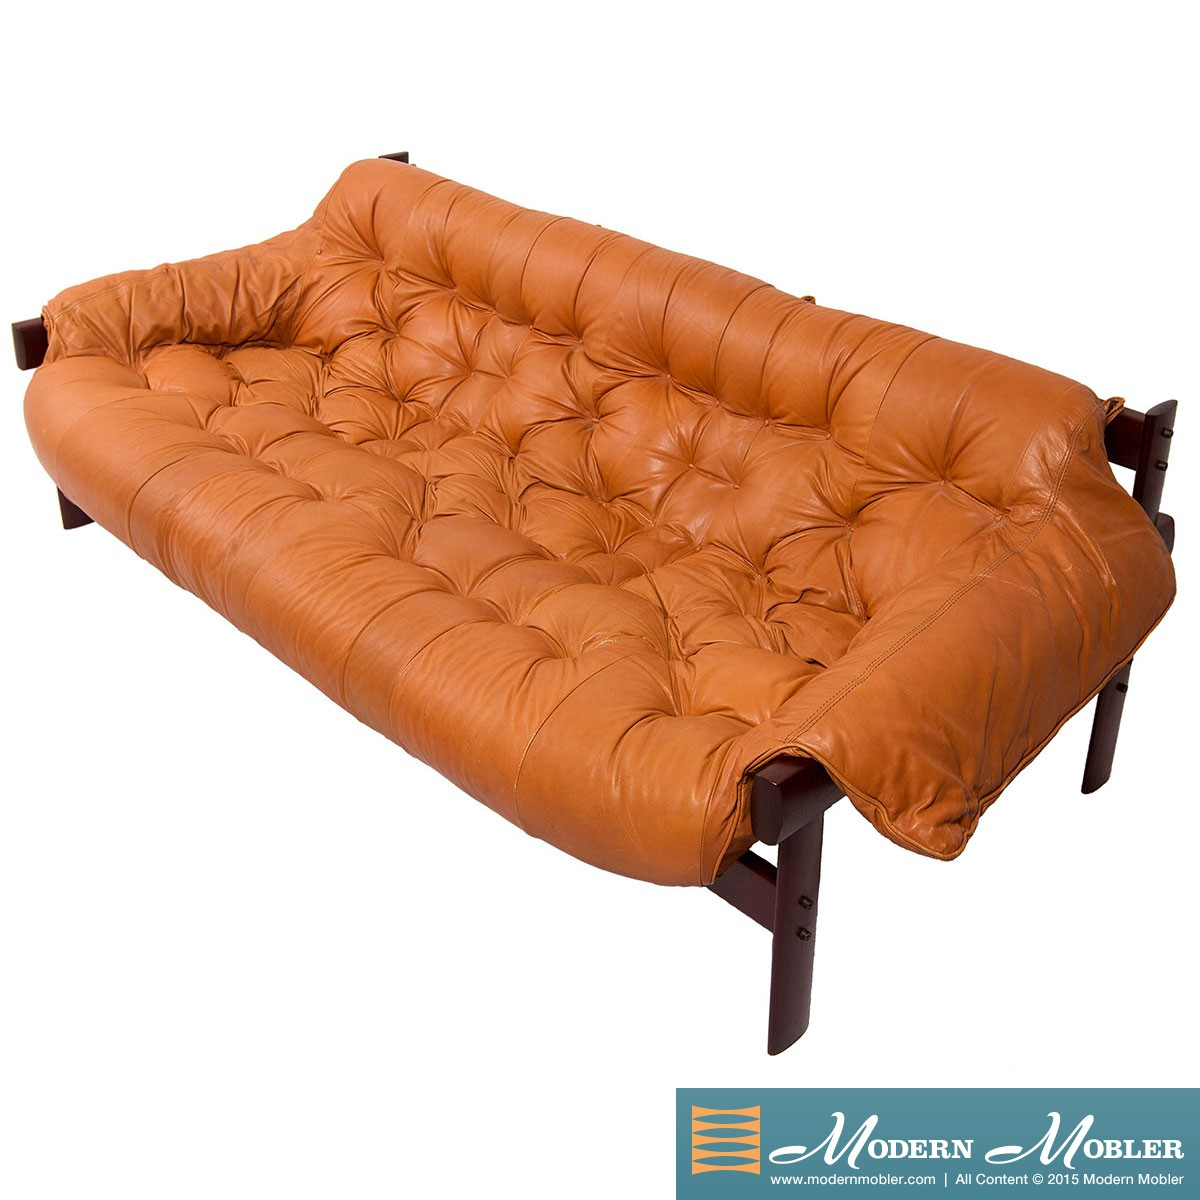 Rare Percival Lafer Brazilian Leather Sofa